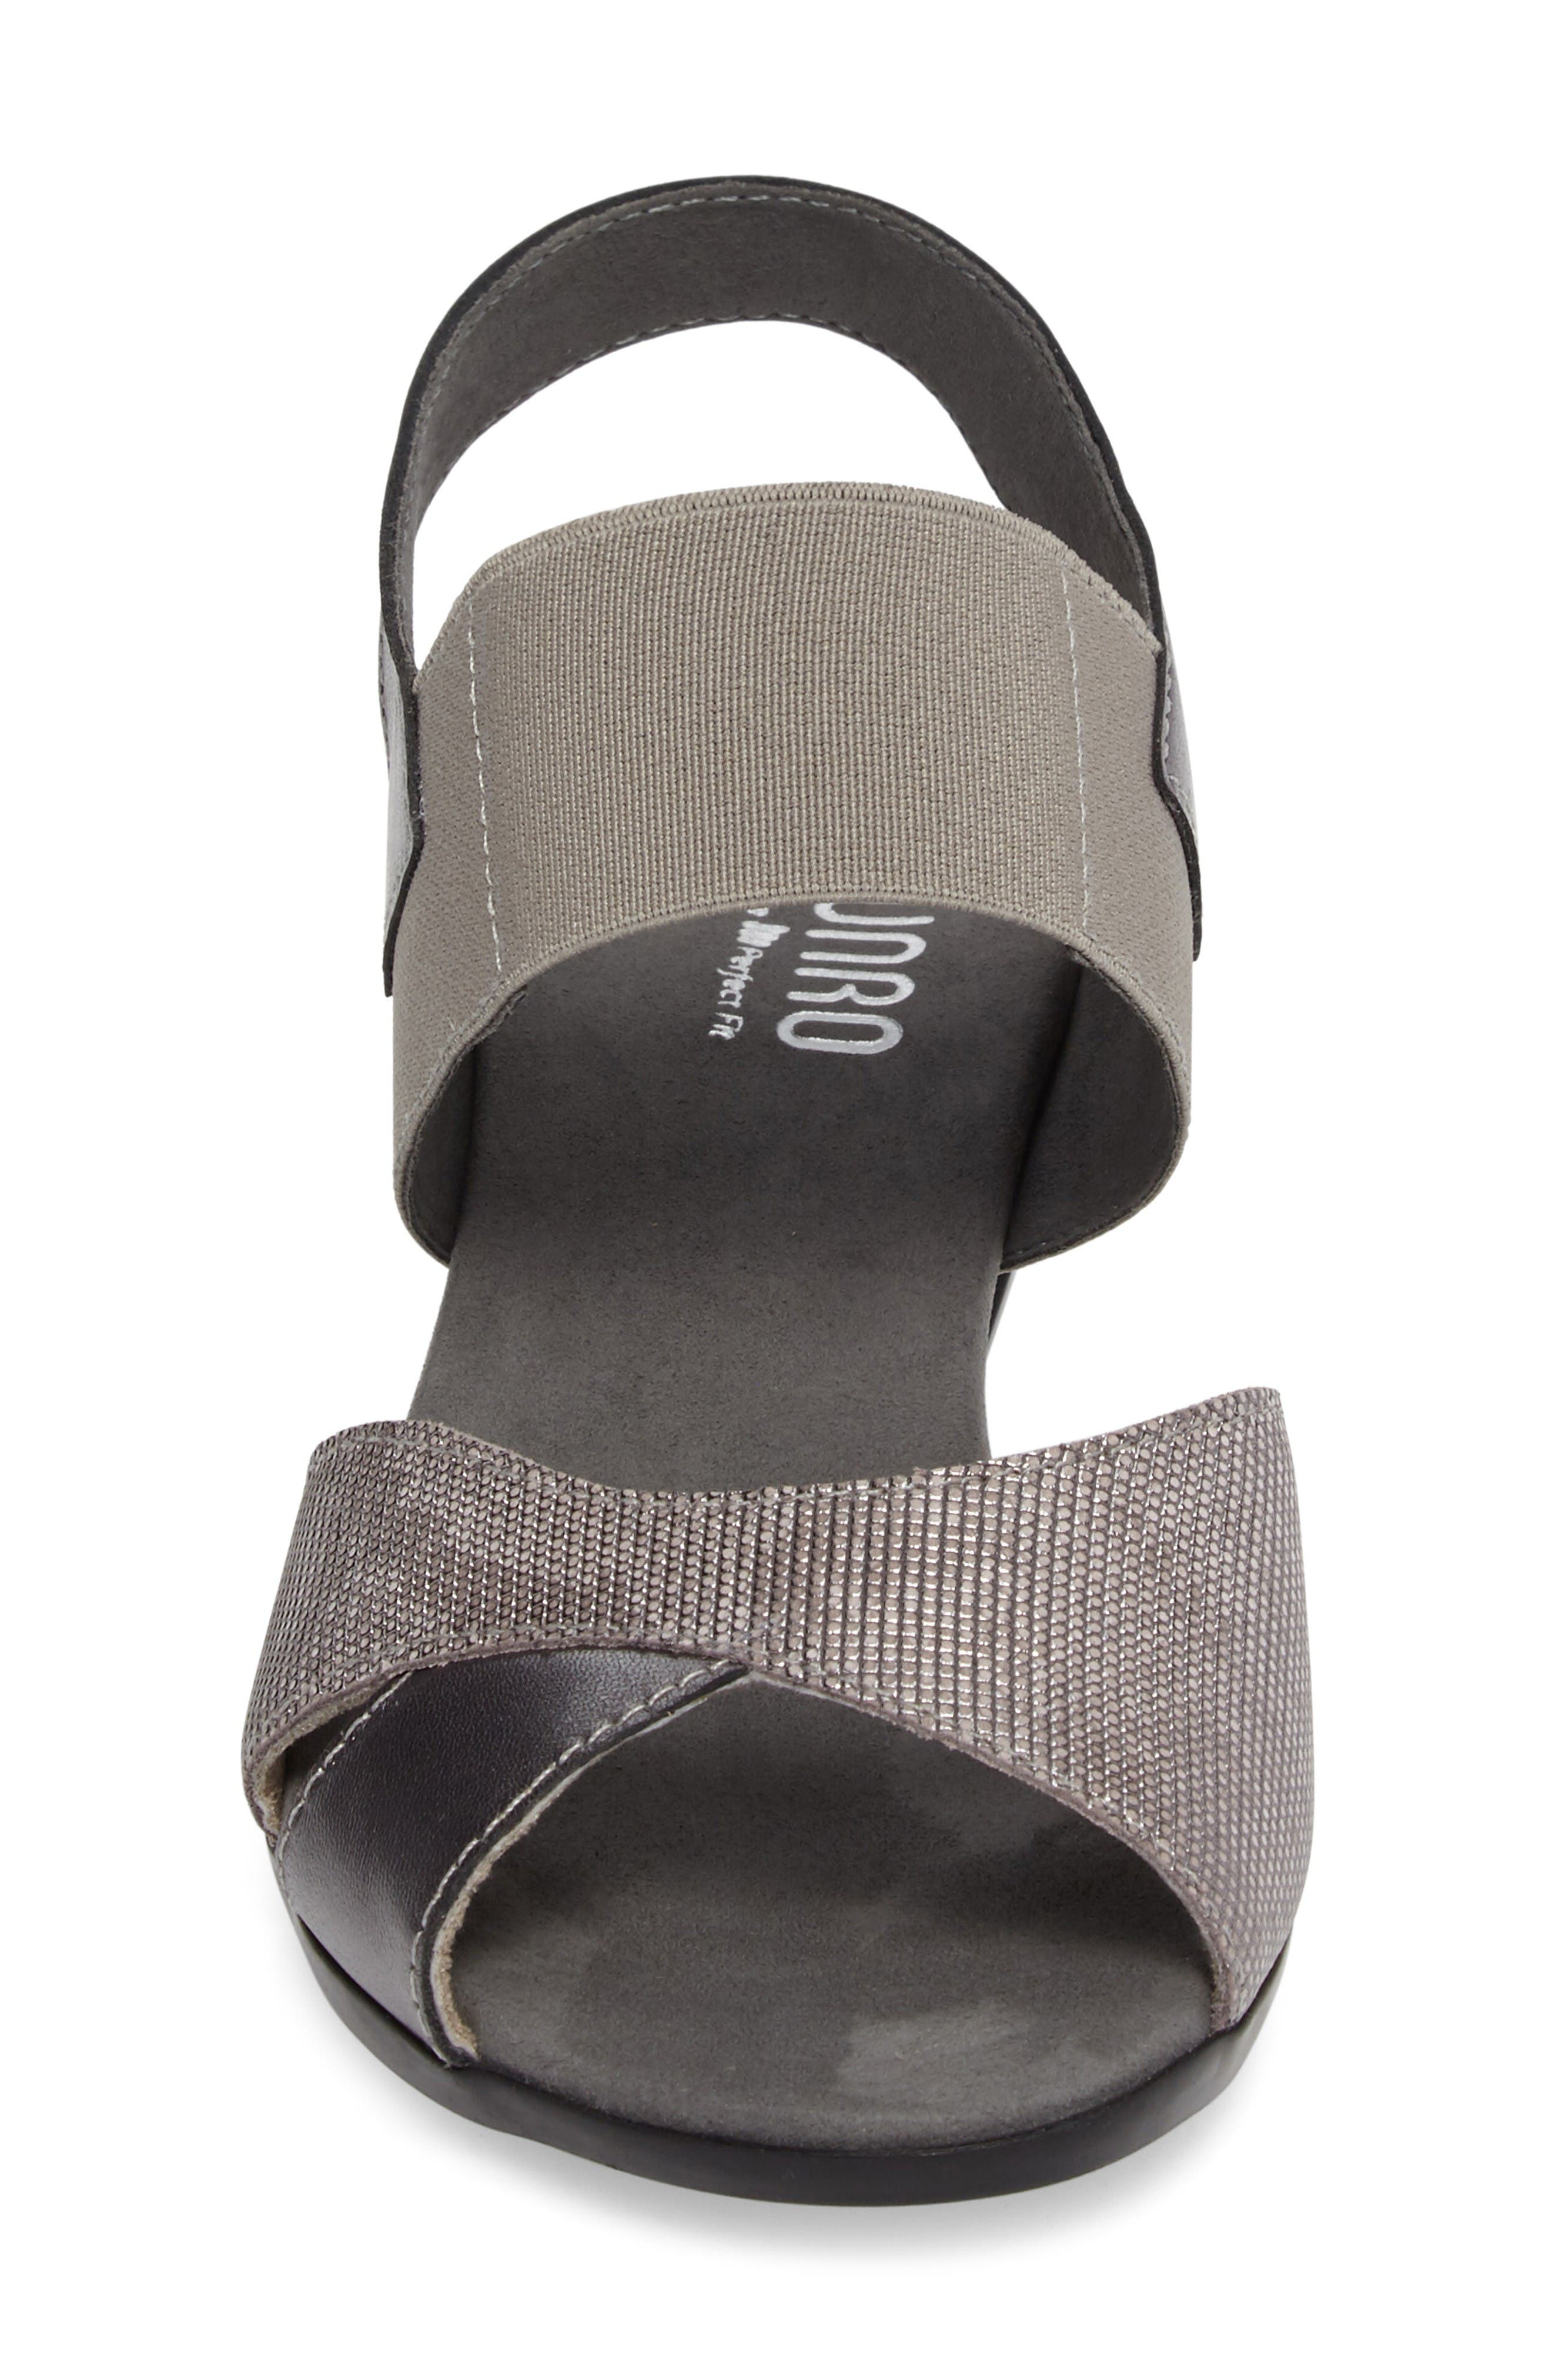 Darling Mixed Finish Slingback Sandal,                             Alternate thumbnail 4, color,                             Pewter Leather